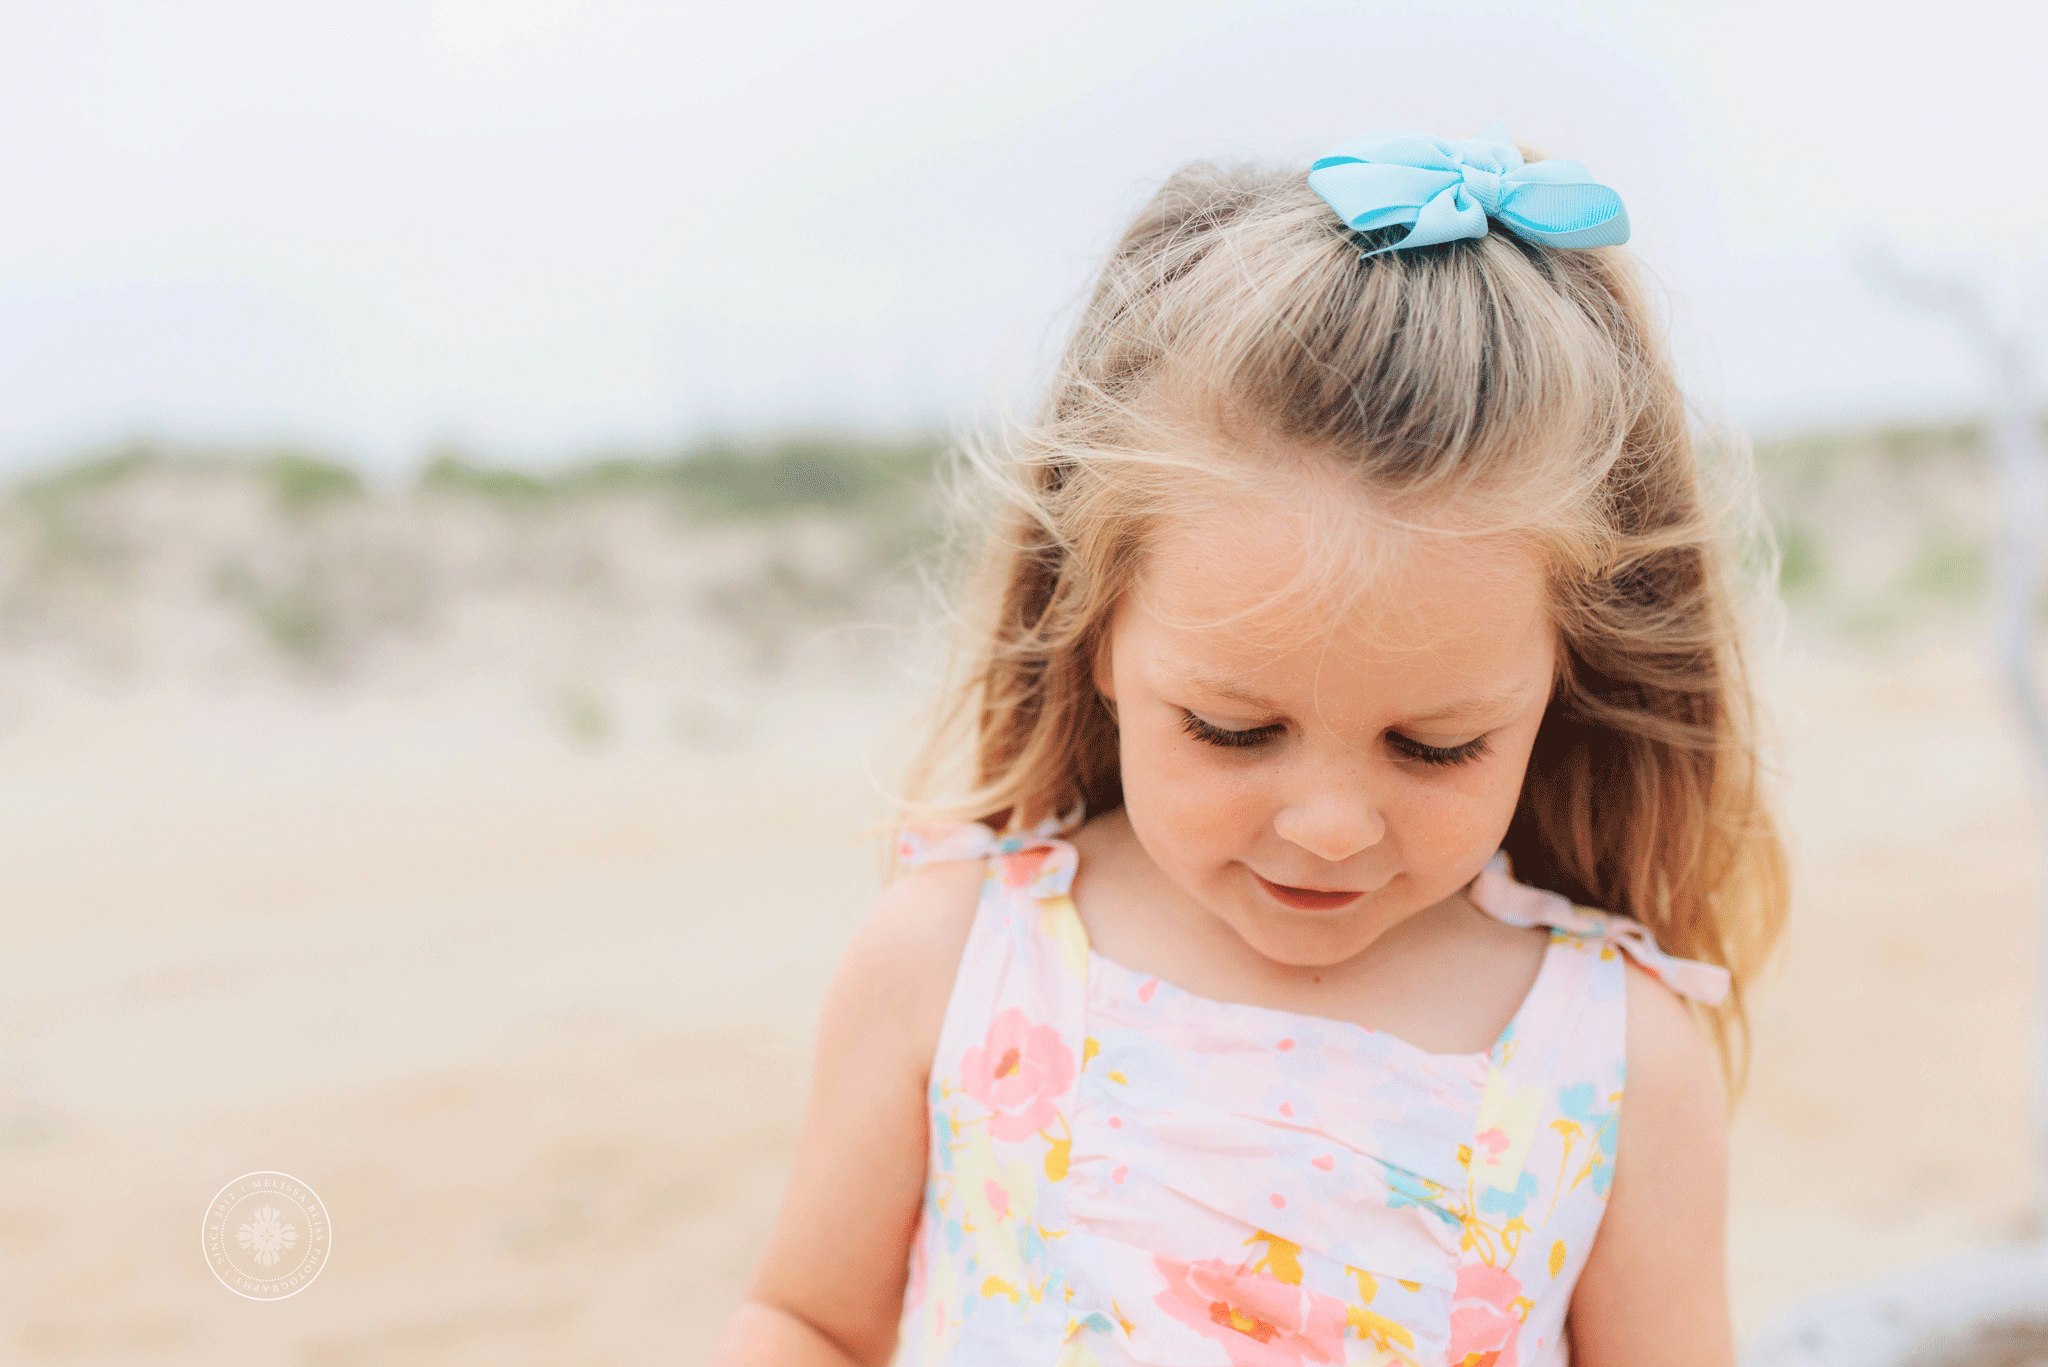 lifestyle-photography-child-on-the-beach-melissa-bliss-photography-hampton-roads-photographers.png